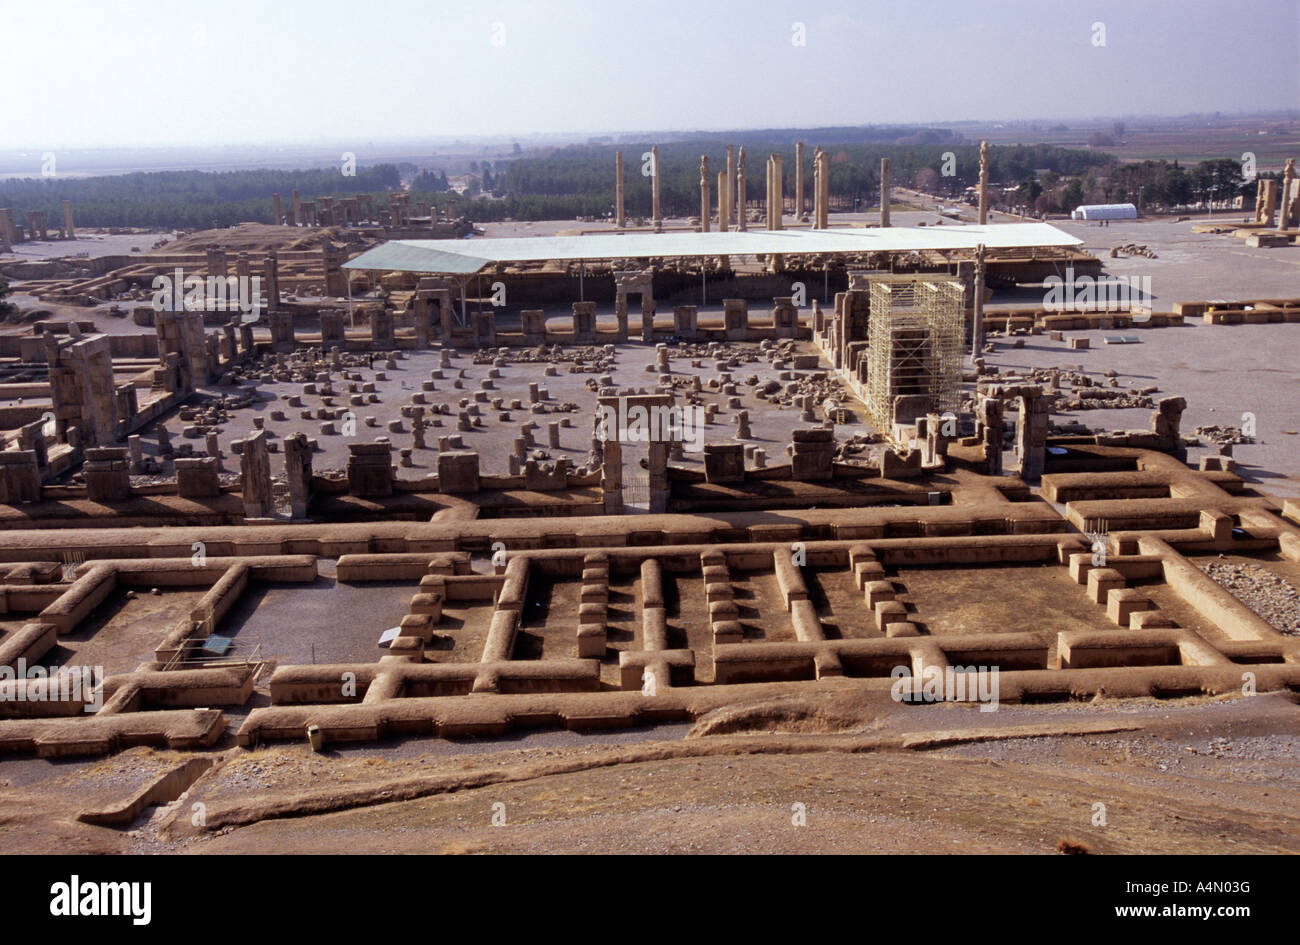 Remains Of The Archaelogical Site Of Persepolis Iran Stock Photo Alamy